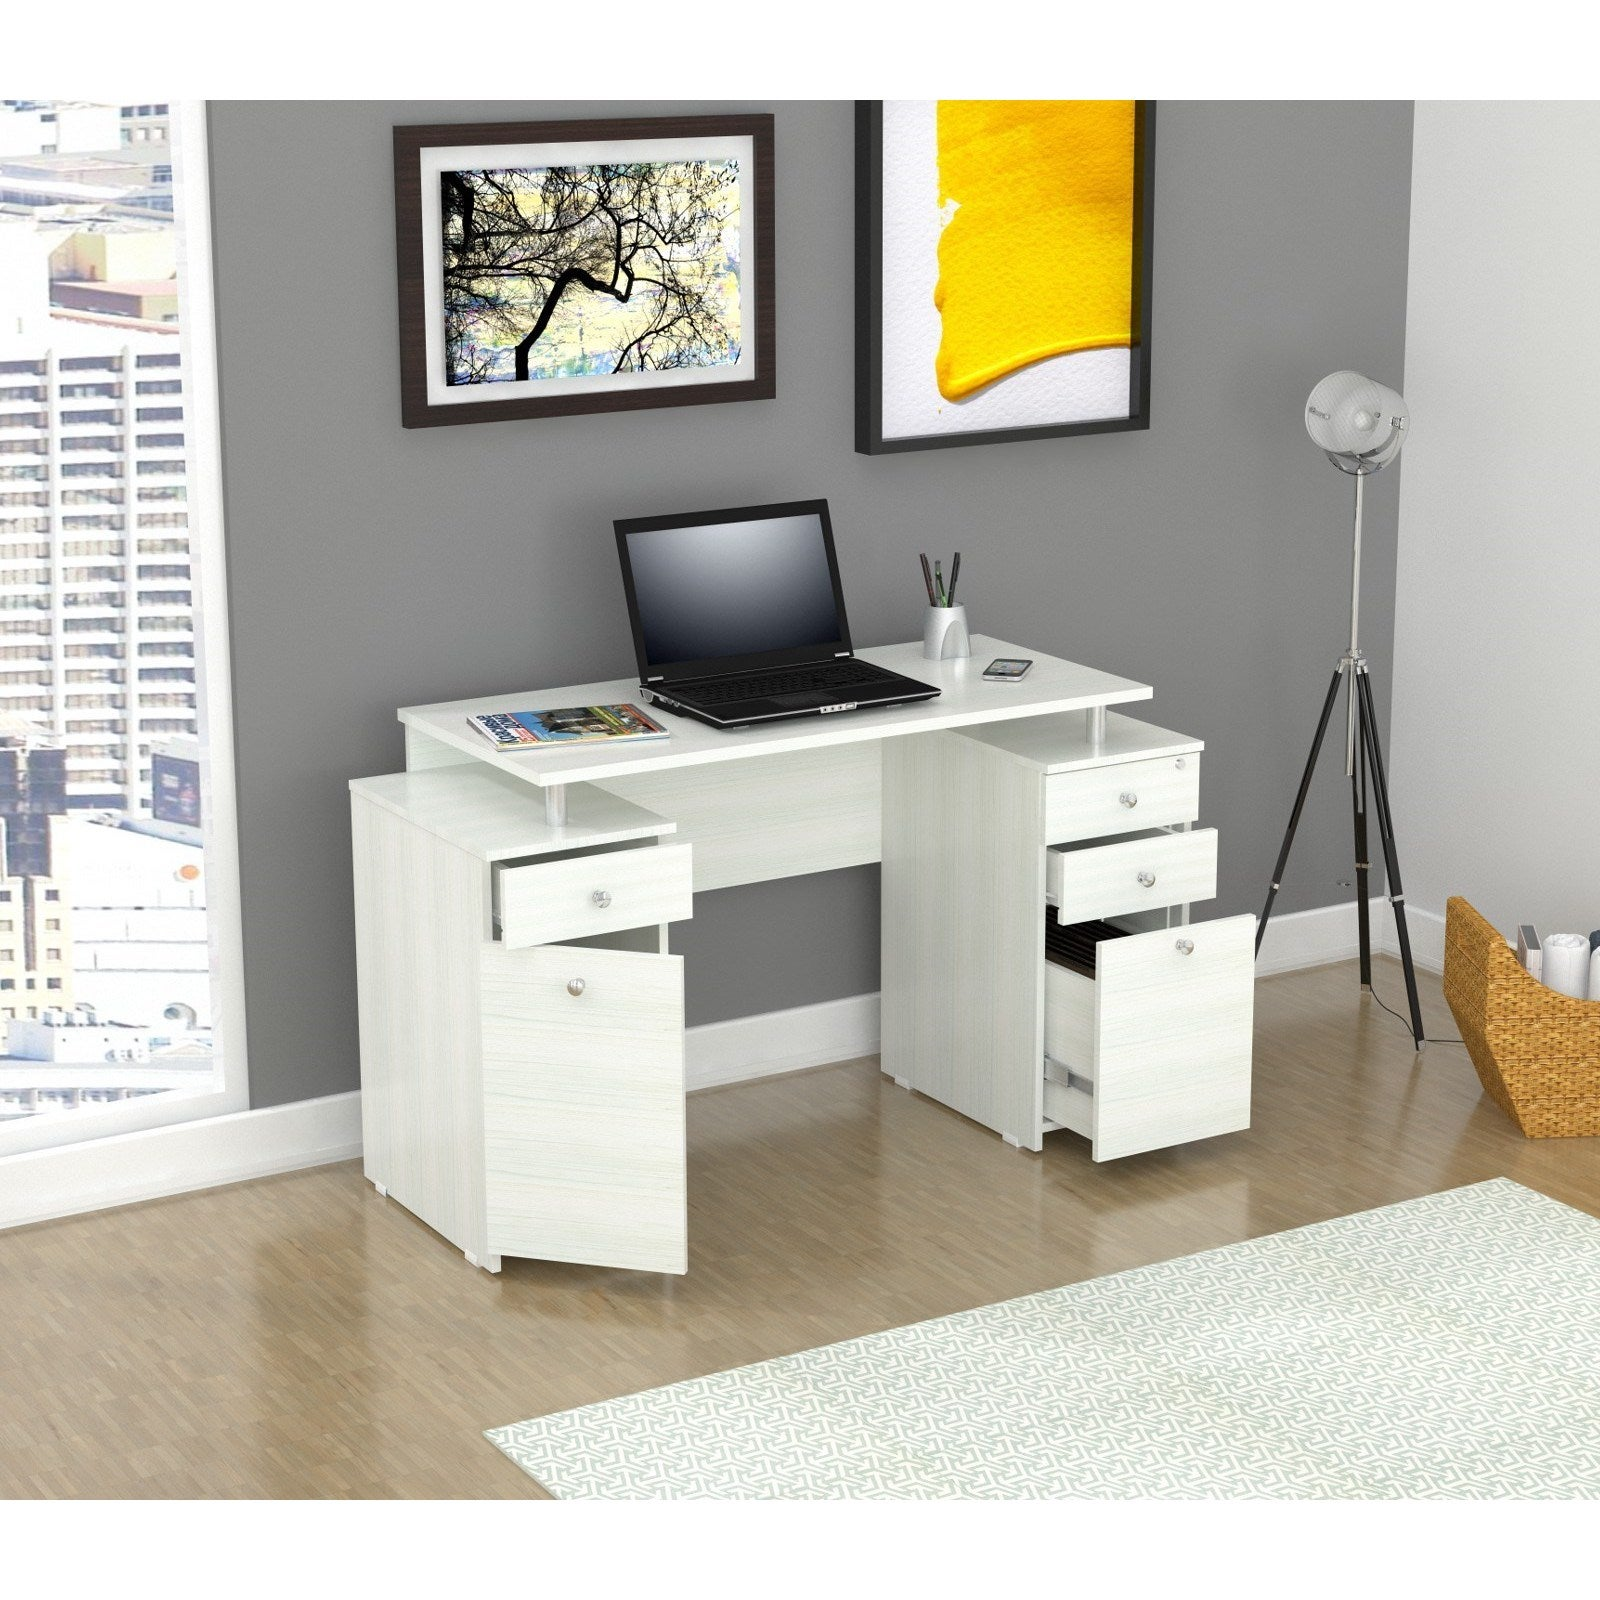 drawer foxhunter drawers home sentinel with table white desk computer glass itm top office